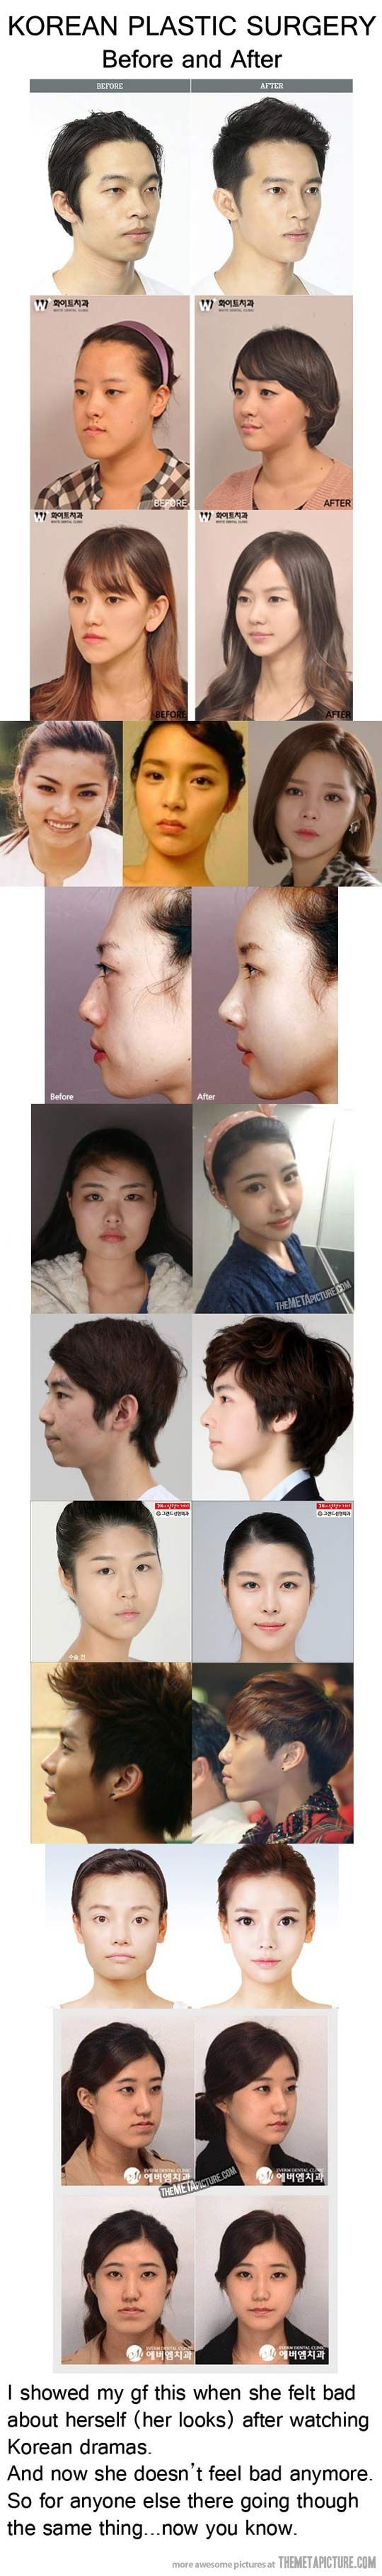 Face-altering Korean plastic surgery…good to know about so that you realise people everywhere get concerned about their looks and we shouldn't feel pressure to reach the 'ideal'